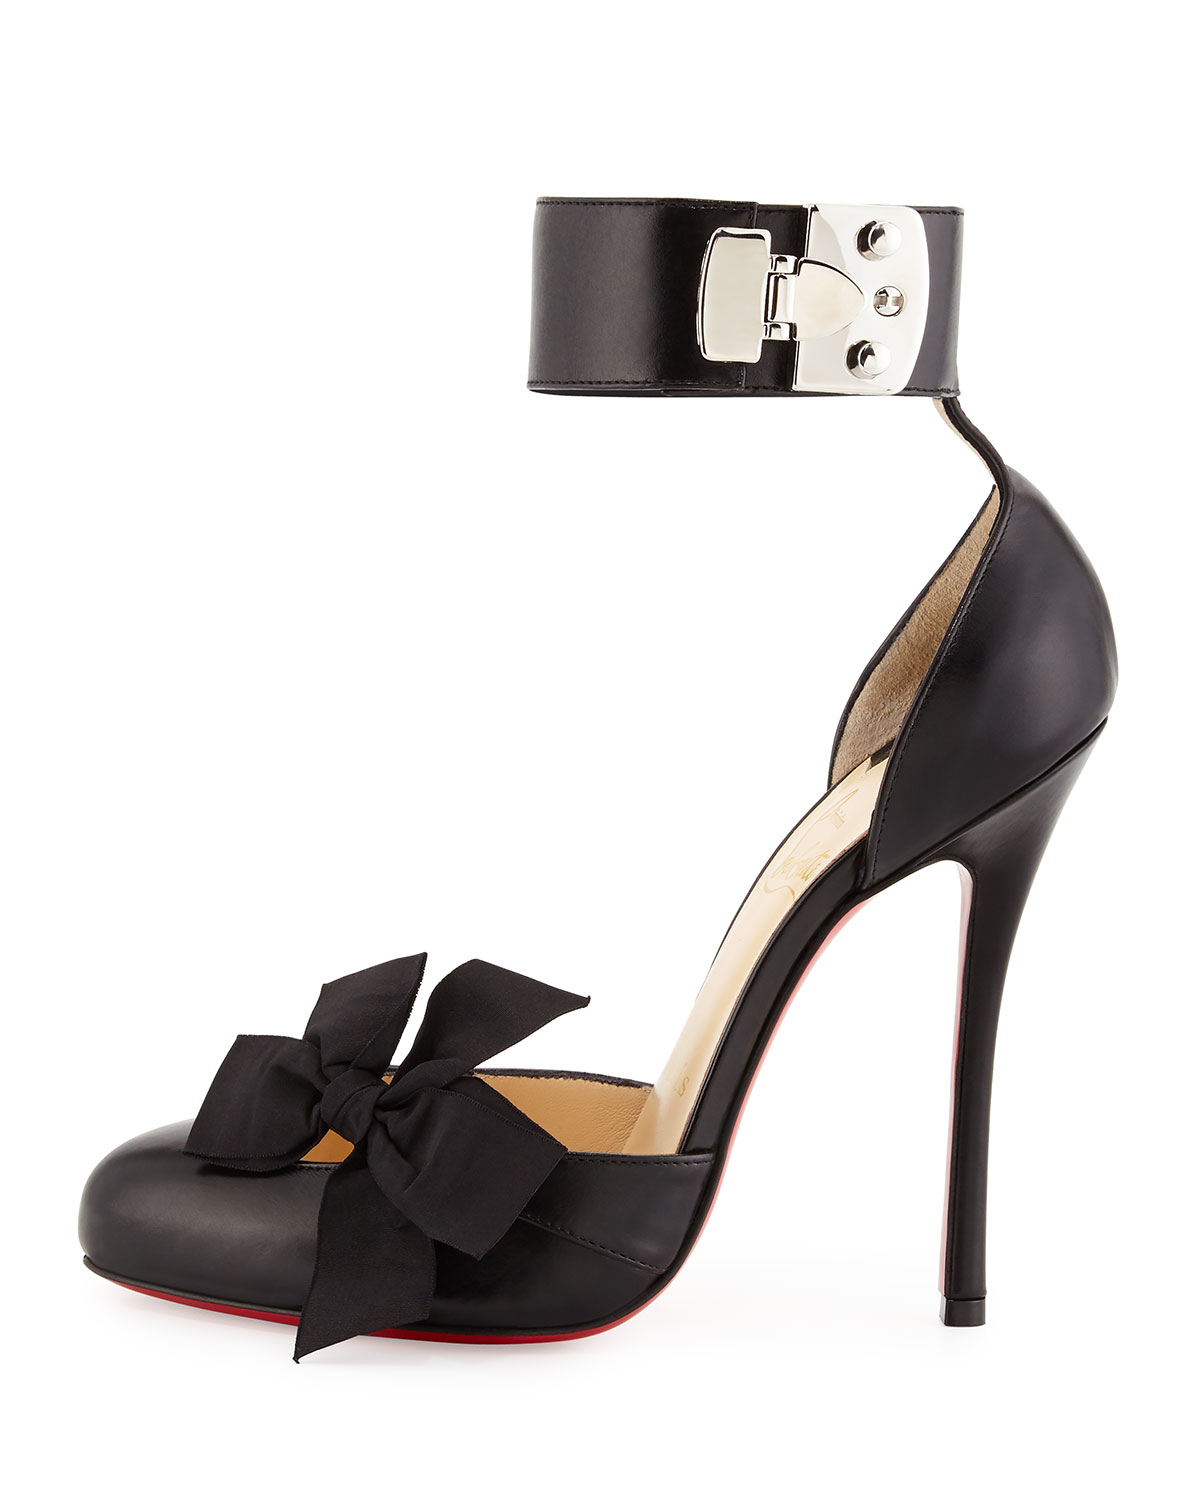 4a299df0666d Lyst - Christian Louboutin Fetish Bow D Orsay Leather Pumps in Black